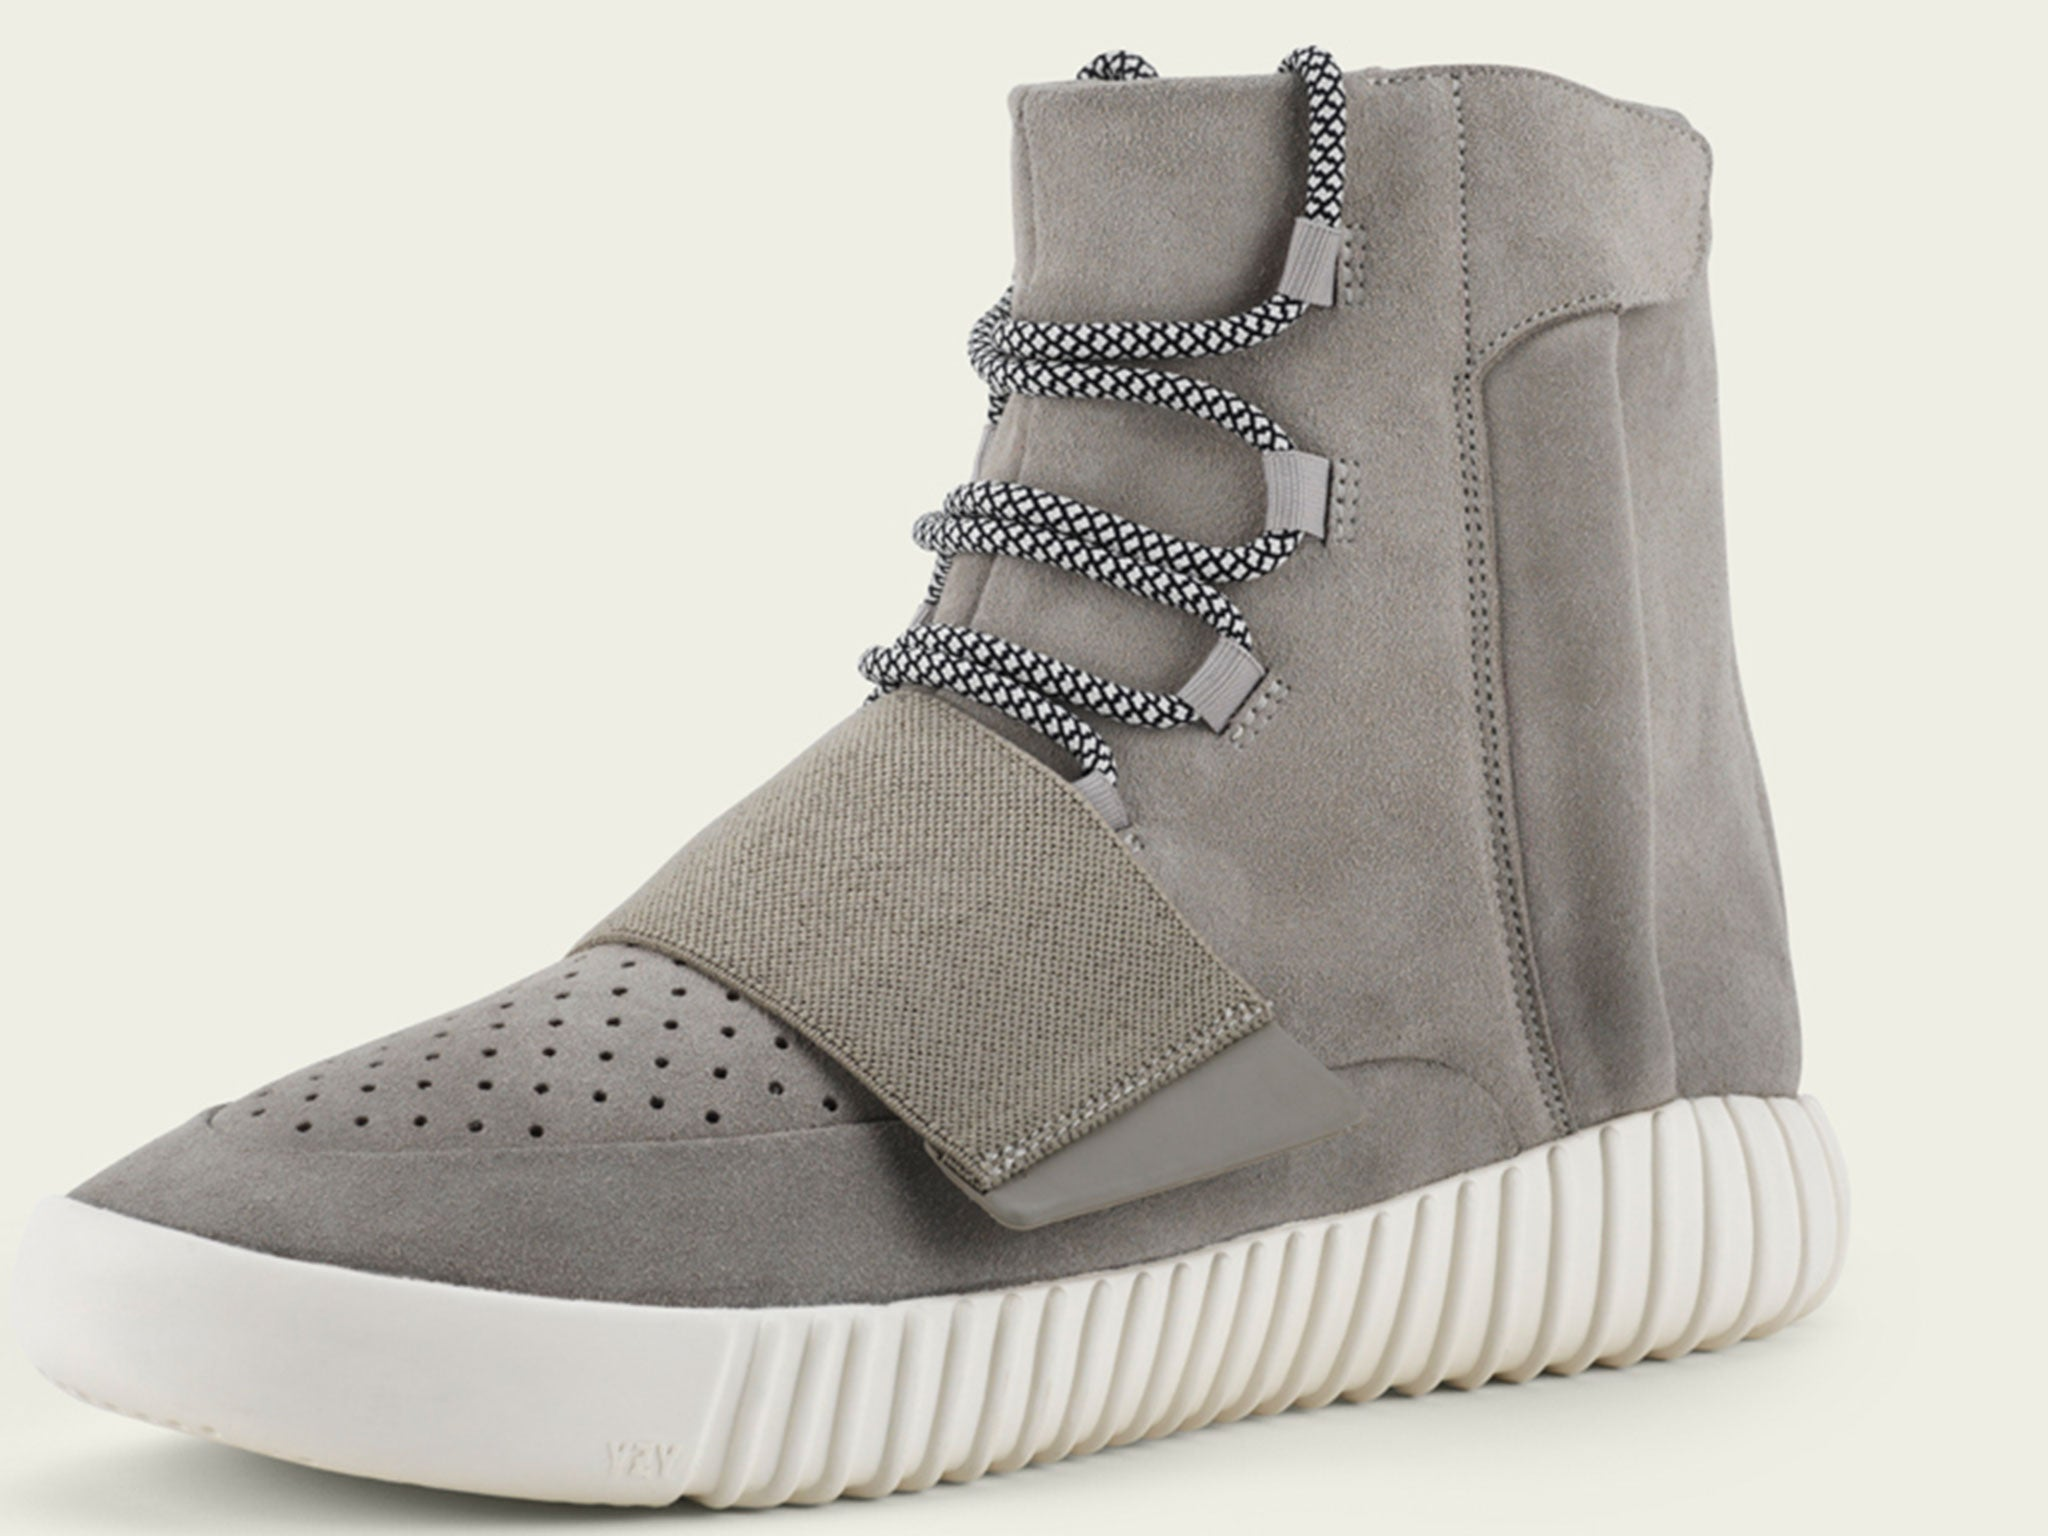 a128eecfe Kanye West s Yeezy Boost trainers  All you need to know ahead of the ...